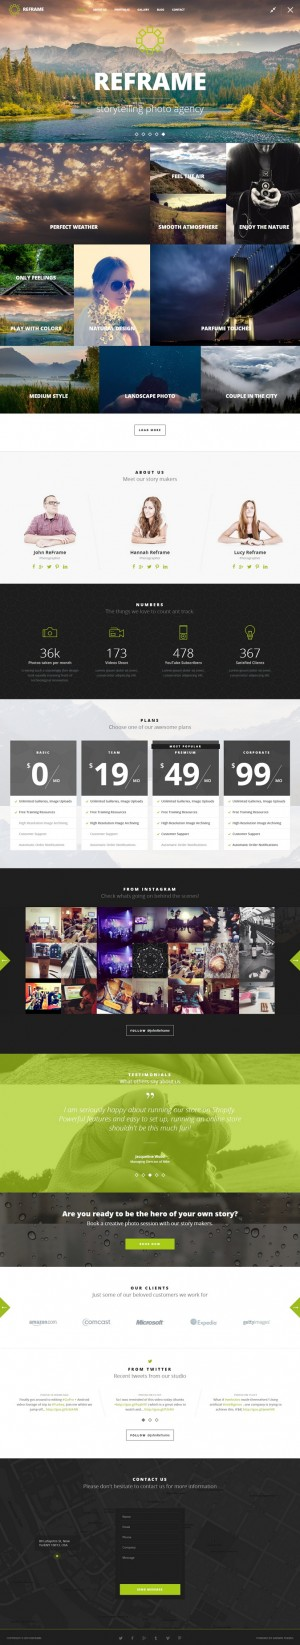 ReFrame is an incredible Responsive Photography HTML Template. This HTML Template will suit phot ...